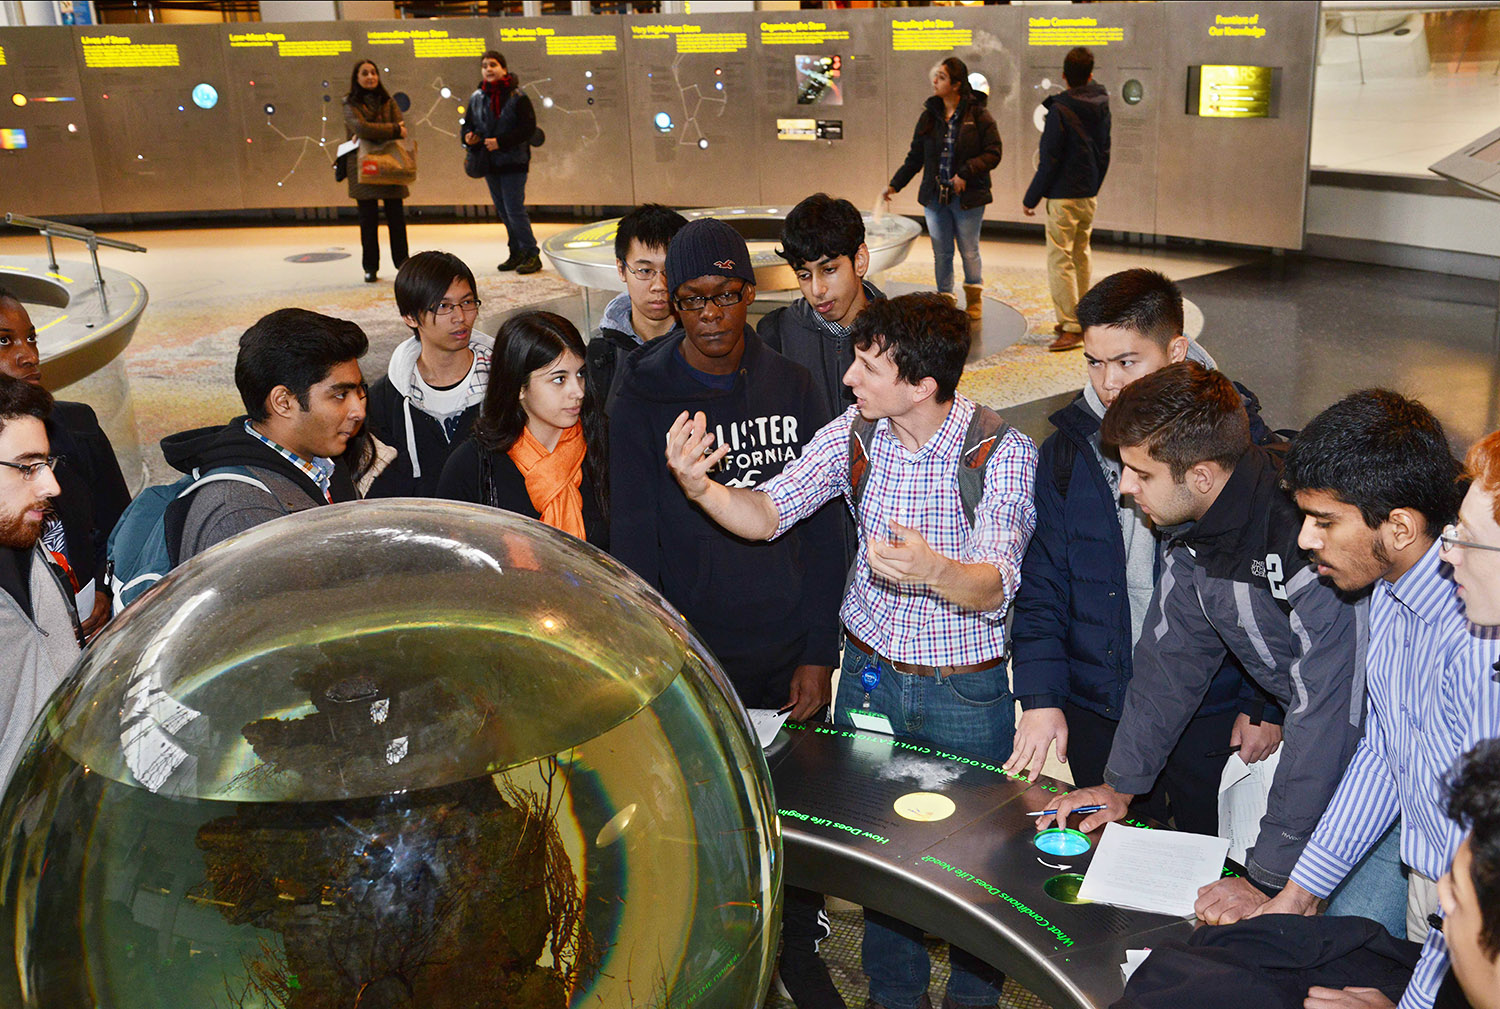 MAT stands in front of an exhibit object in the Rose Center, describing it to surrounding high school students who listen and make notes.